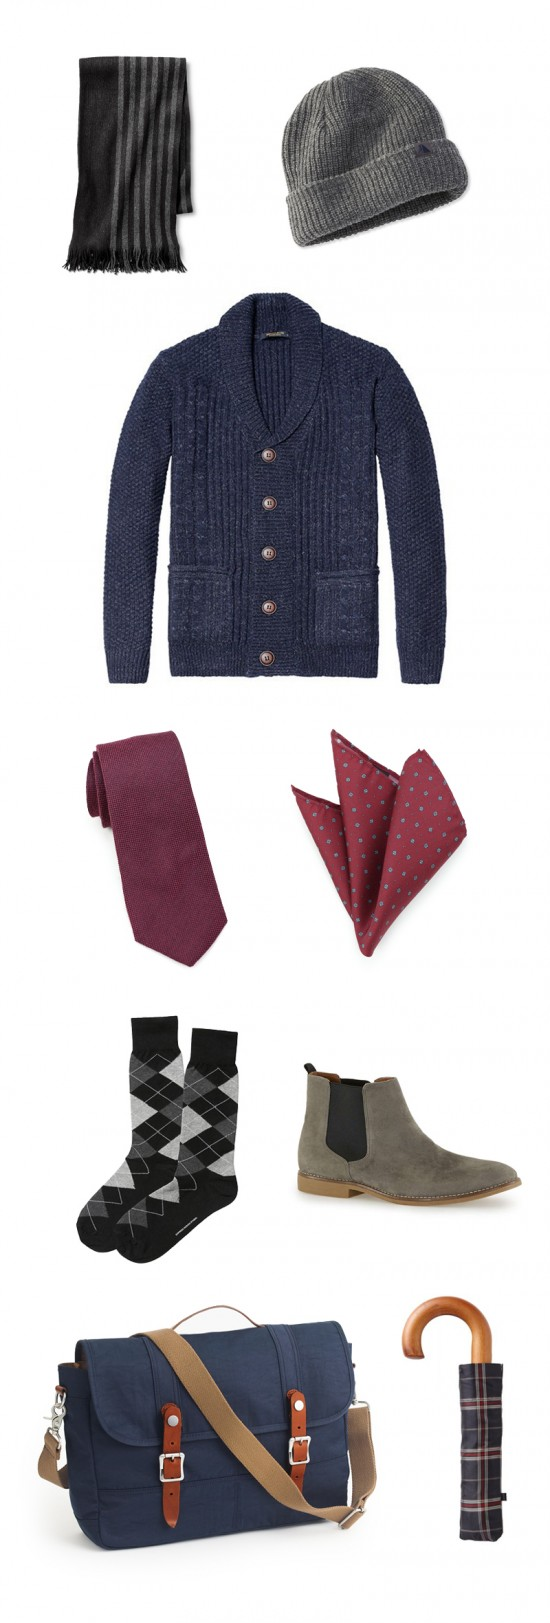 Menswear Accessories Perfect for Fall